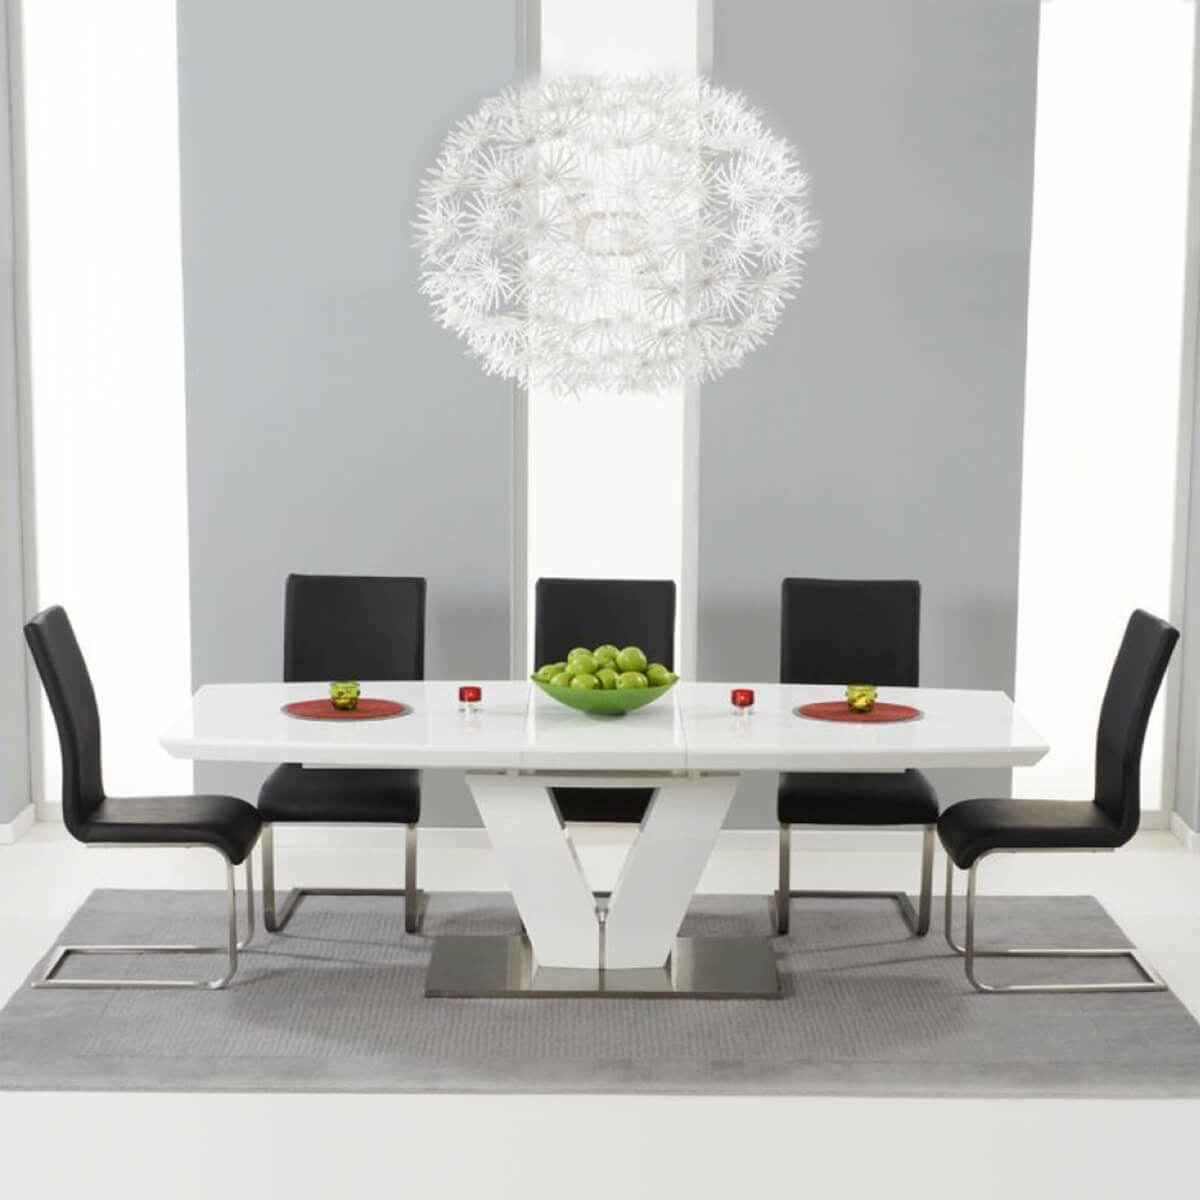 Malibu White Extending Dining Table - Black